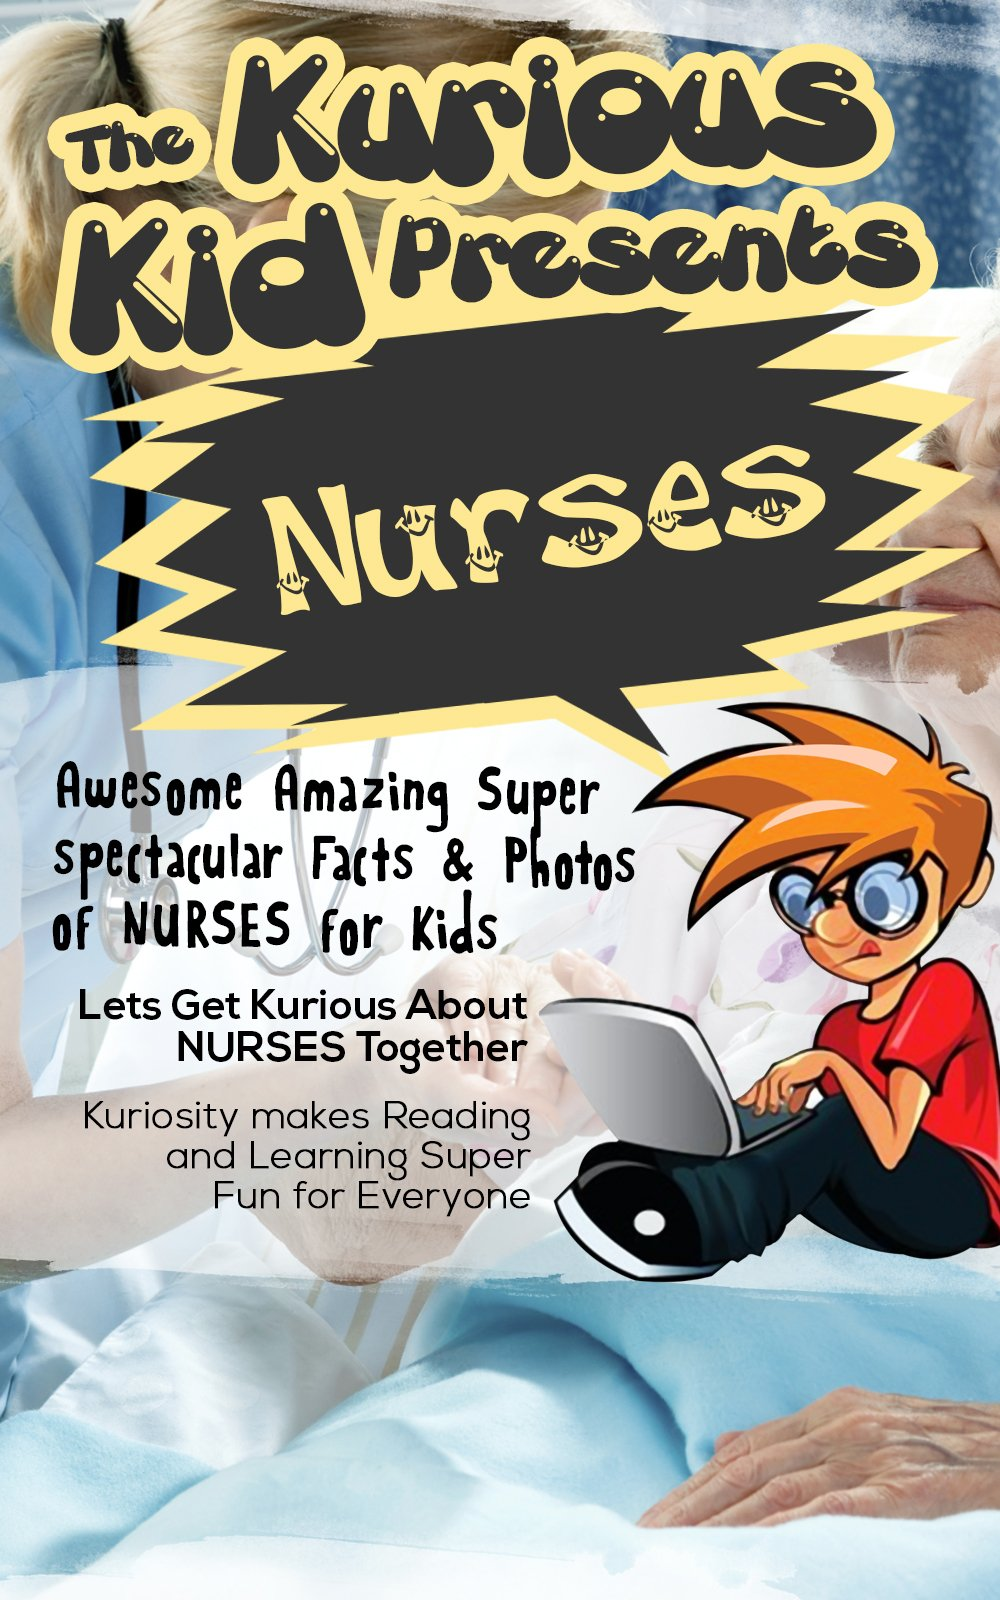 Reviews: Children's book about Nurses (kids books age 3 to 6